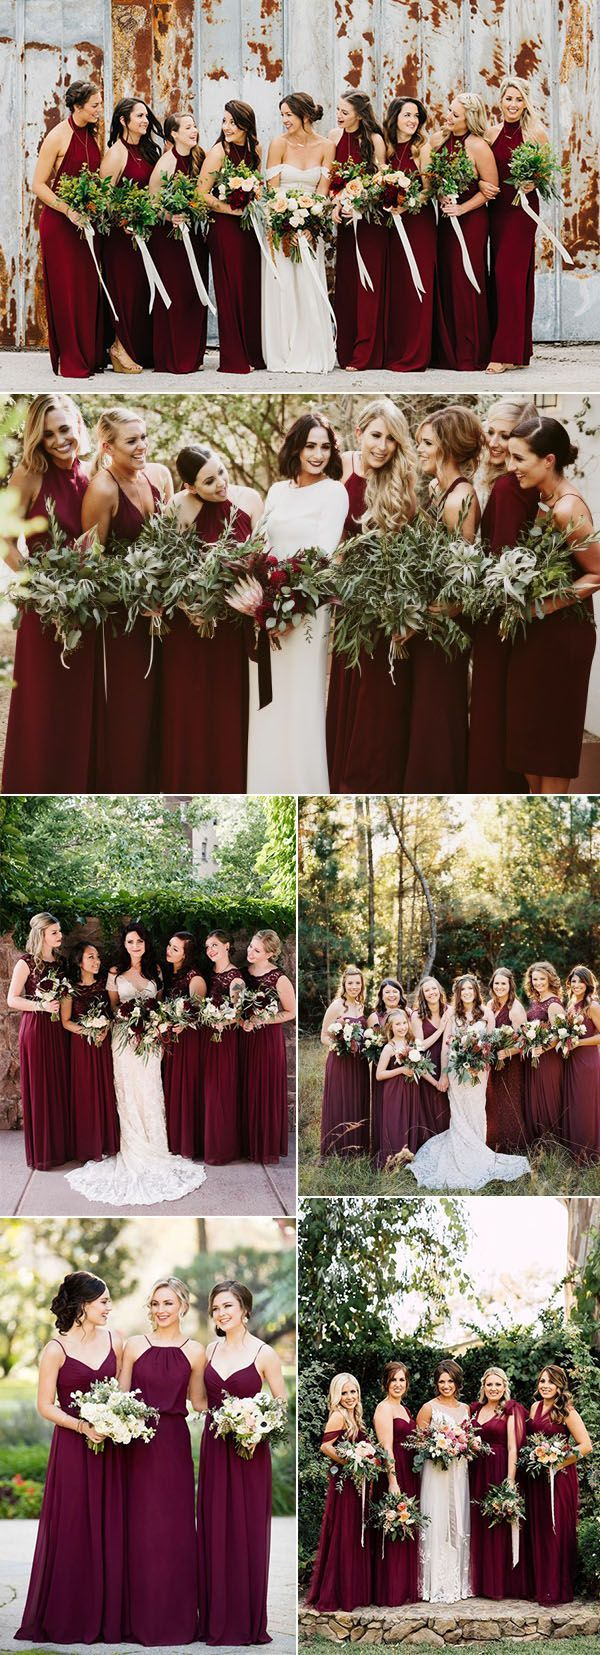 T-length lace wedding dresses november 2018  Refined Burgundy and Marsala Wedding Color Ideas for Fall Brides